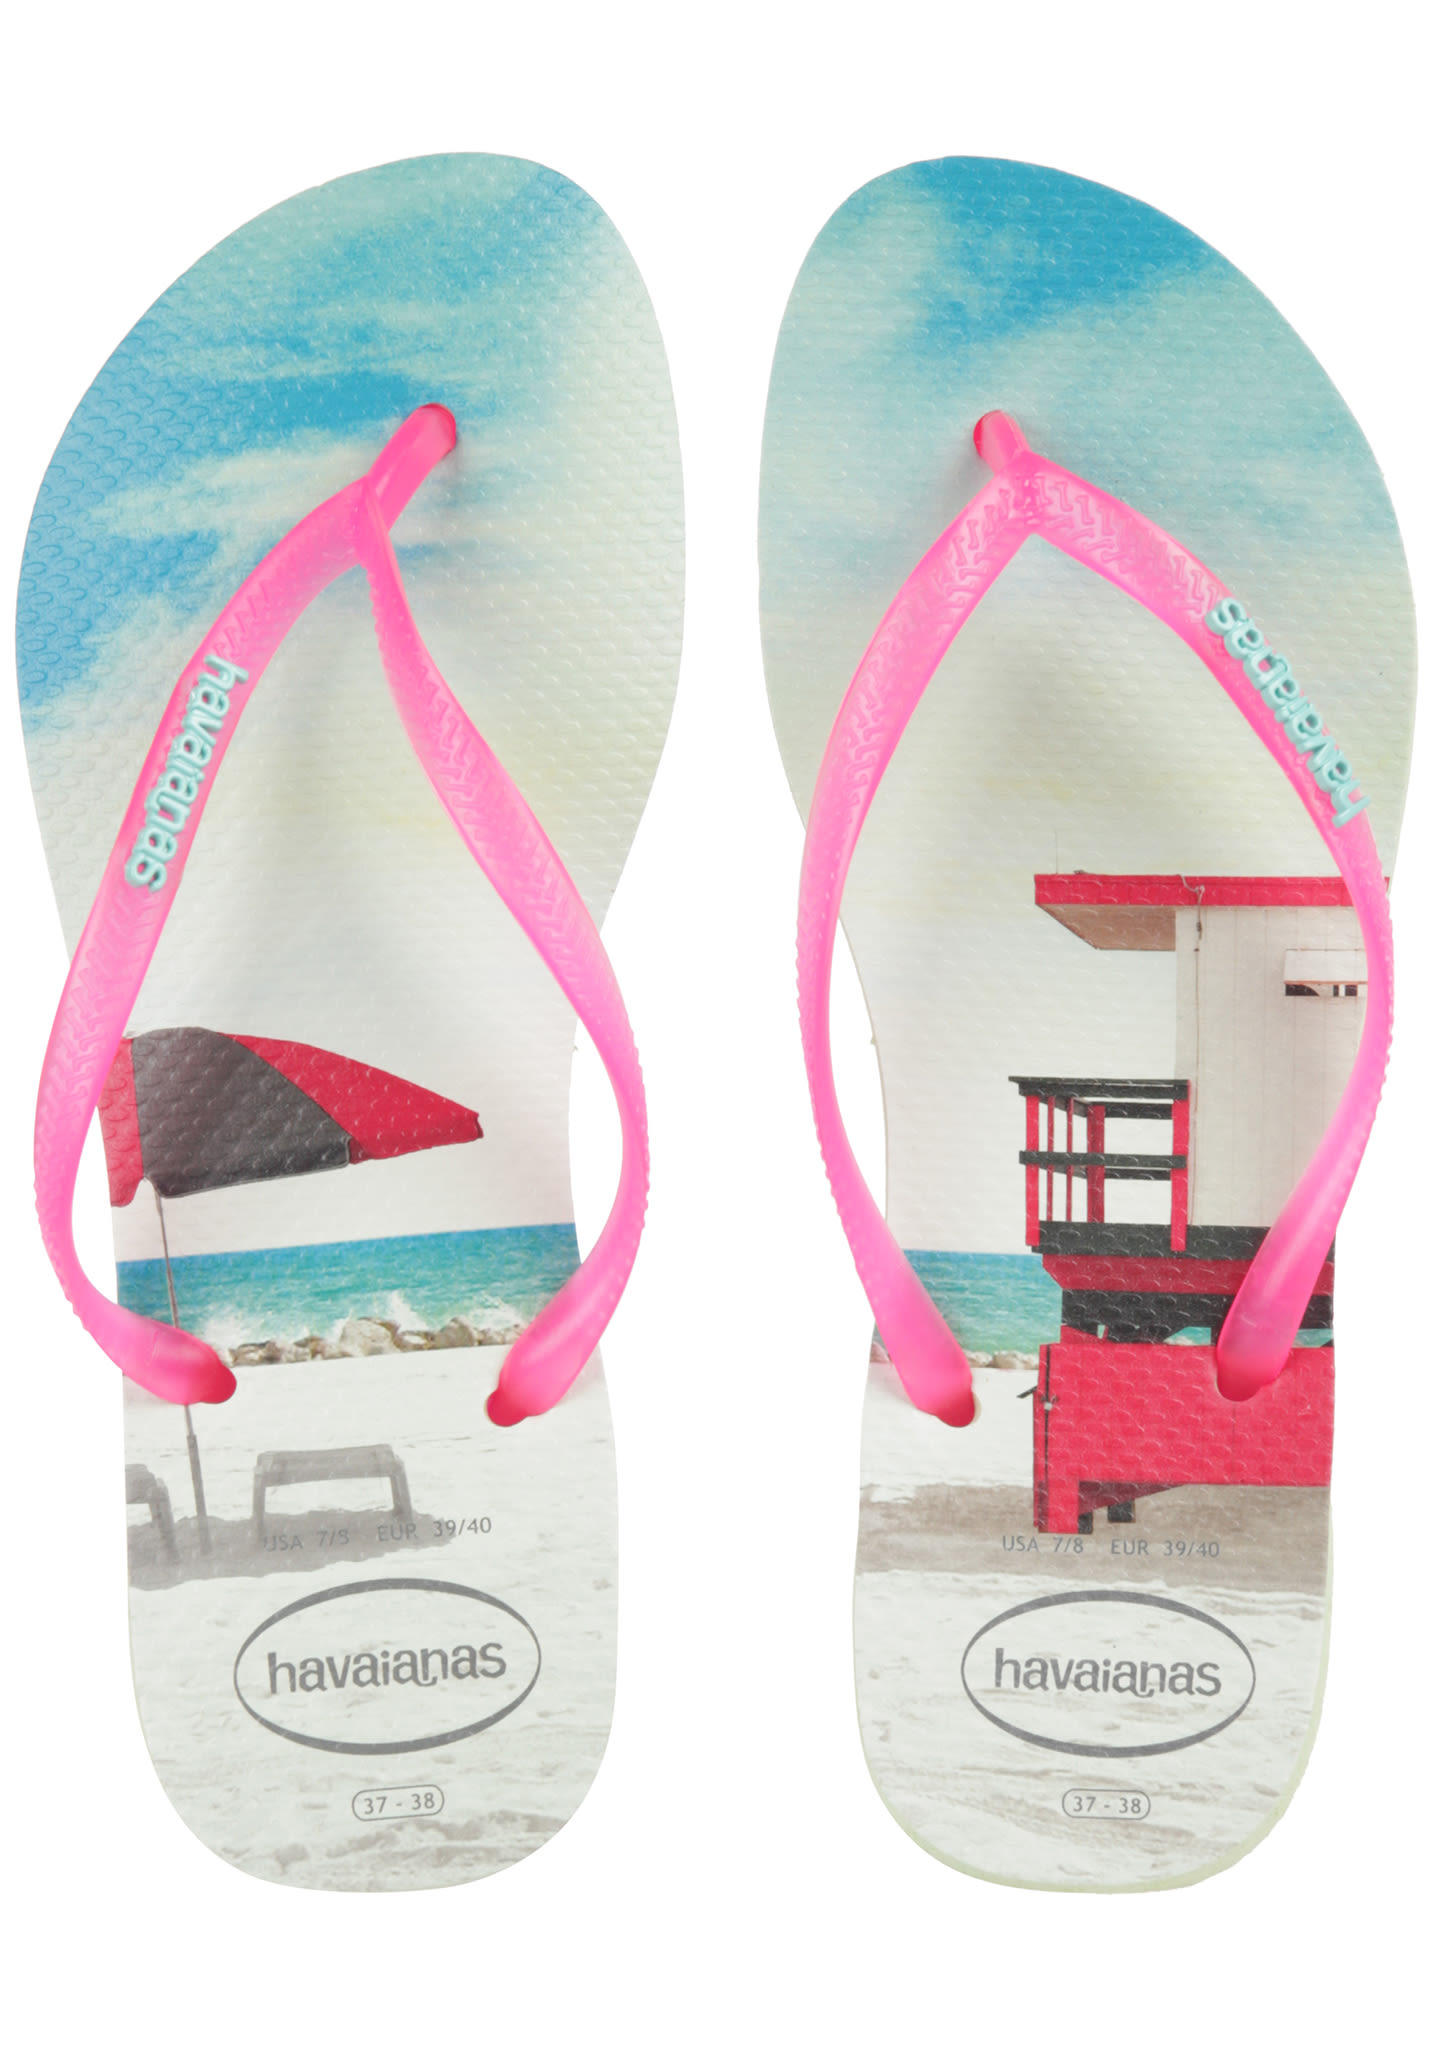 a7f9cd833 HAVAIANAS Slim Paisage - Sandals for Women - Green - Planet Sports